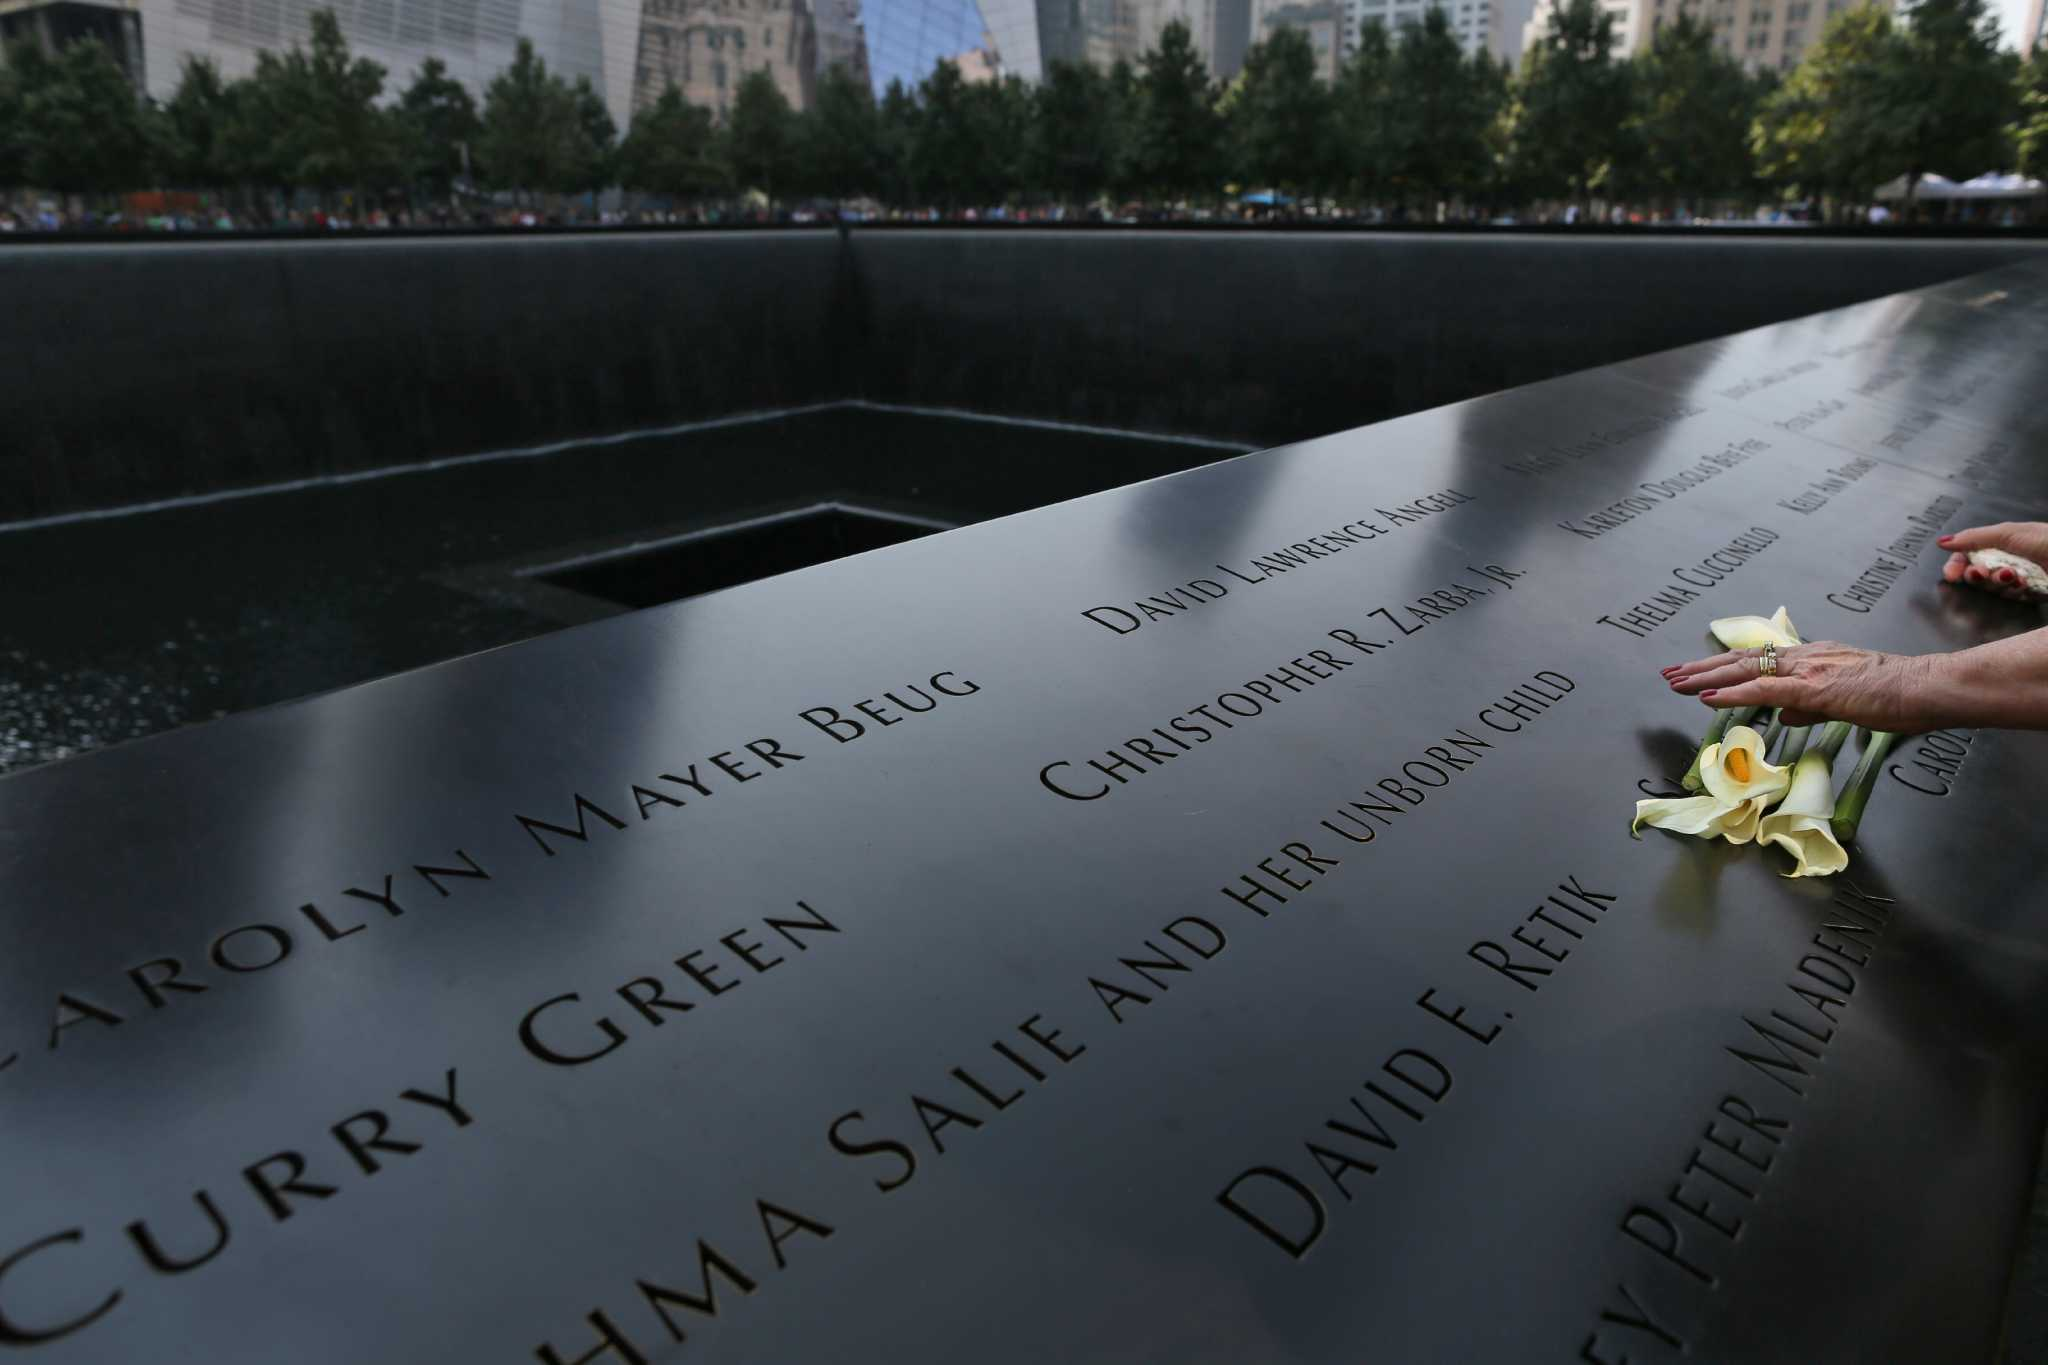 9/11 at 15: Safer at home, but jihadist threat is greater